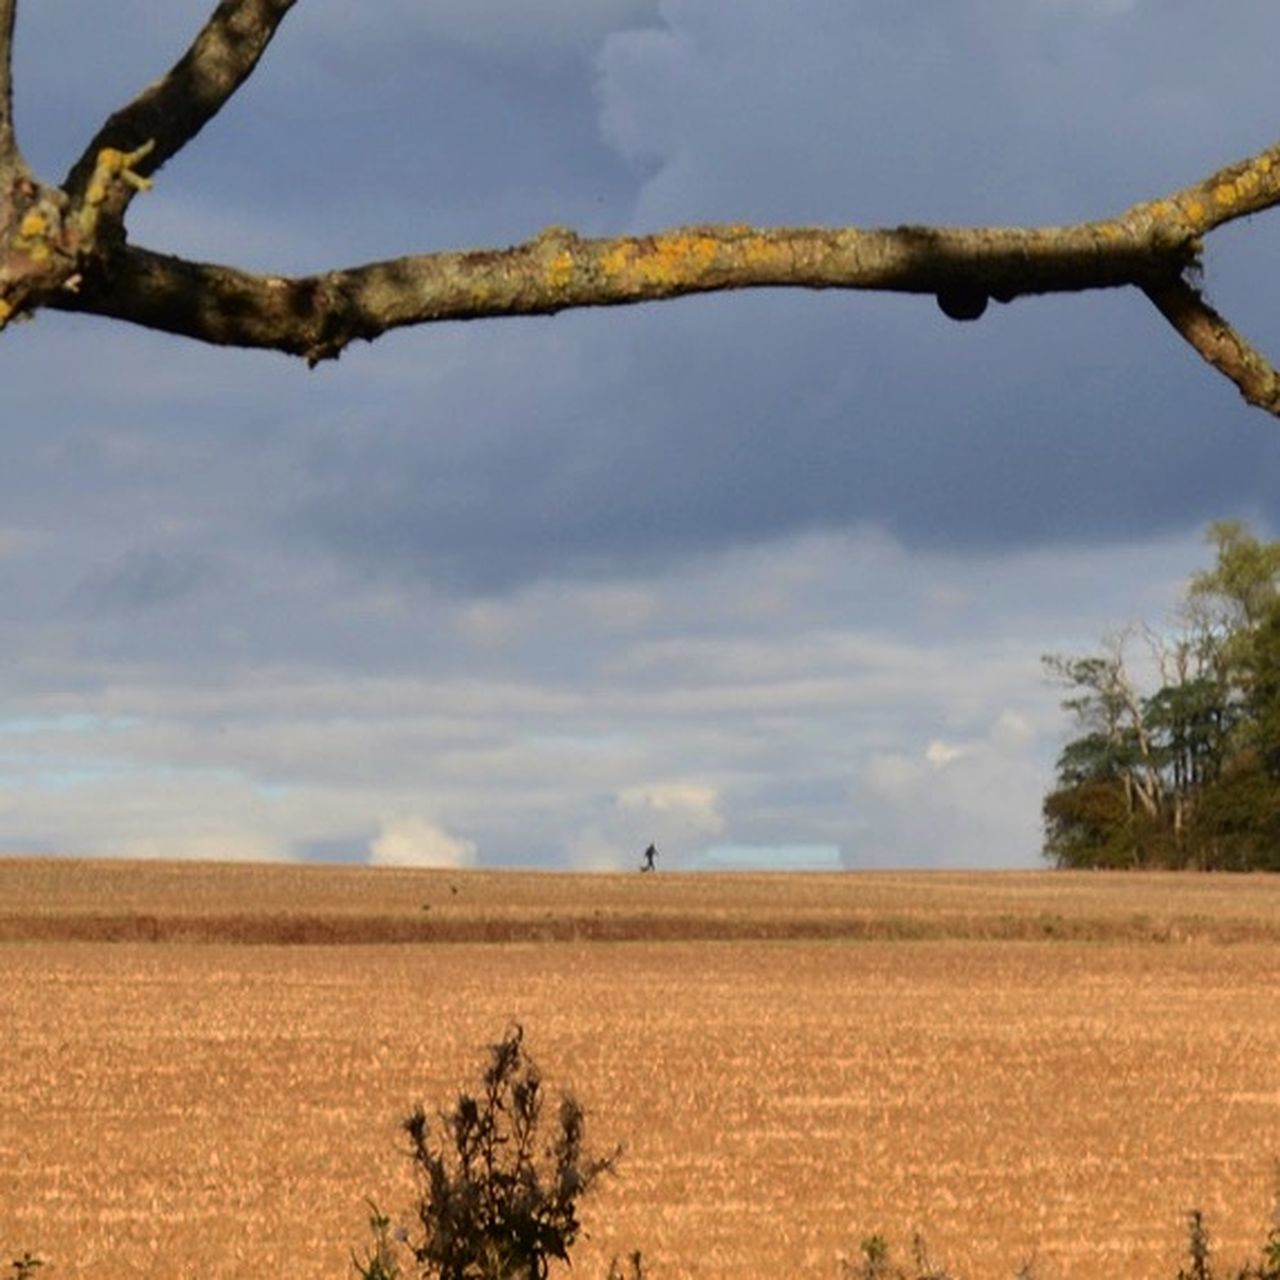 Dog Walker Sky Landscape Horizontal Sky And Trees Agriculture Outdoors Day Cloud - Sky Tree